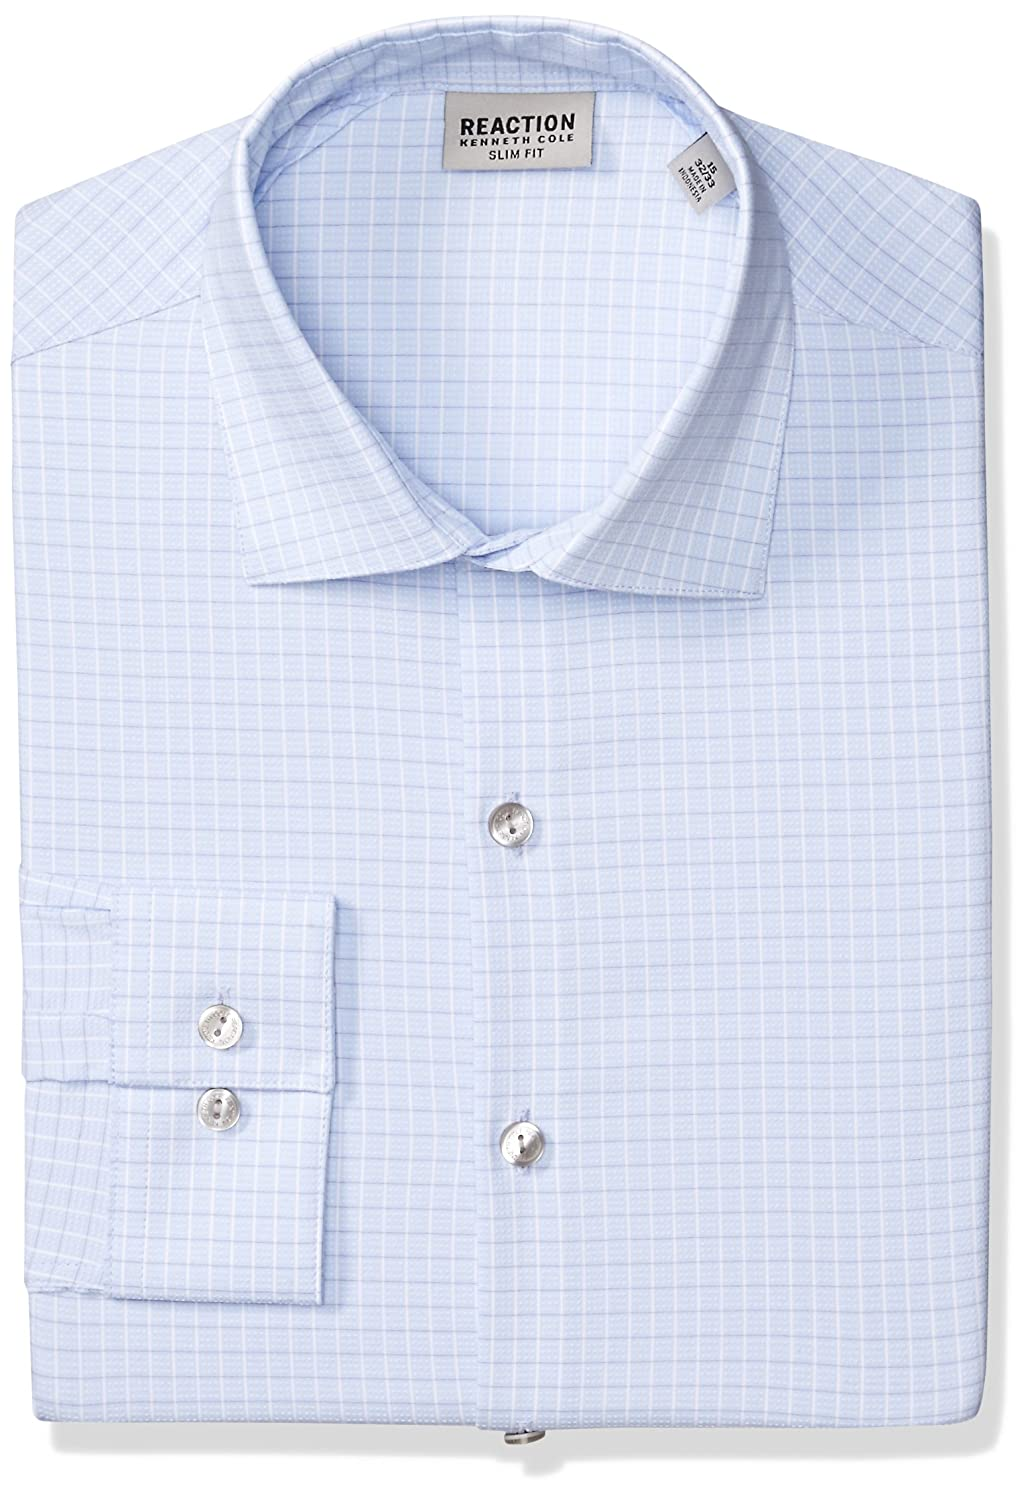 bff8698d Spread collar, regular cuff, no pocket. The no-seam design combined with  flex fabrication provides optimum mobility. Elastic sewing thread allows  maximum ...